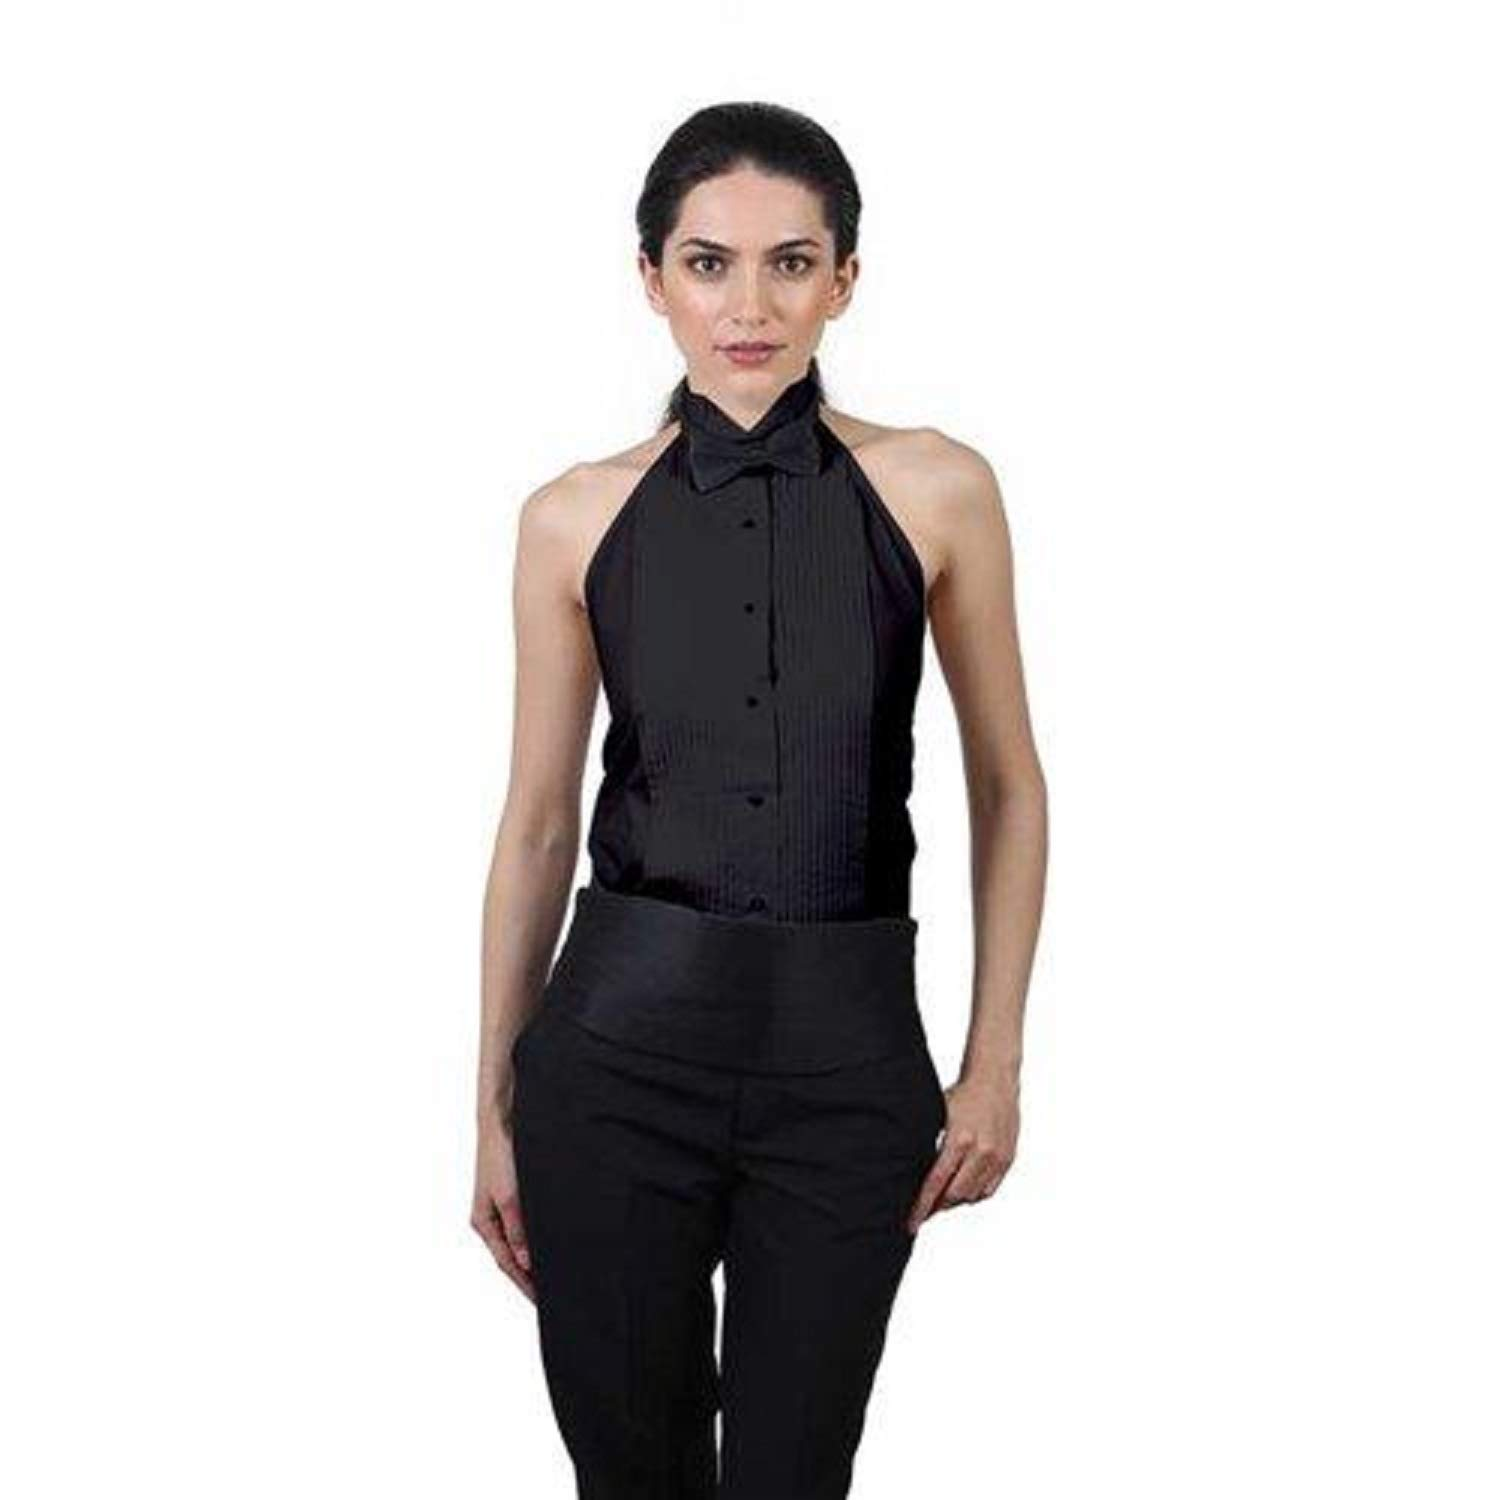 Women's Black Tuxedo Halter Shirt and Black Bow Tie Set (S (6-8)) by SixStarUniforms